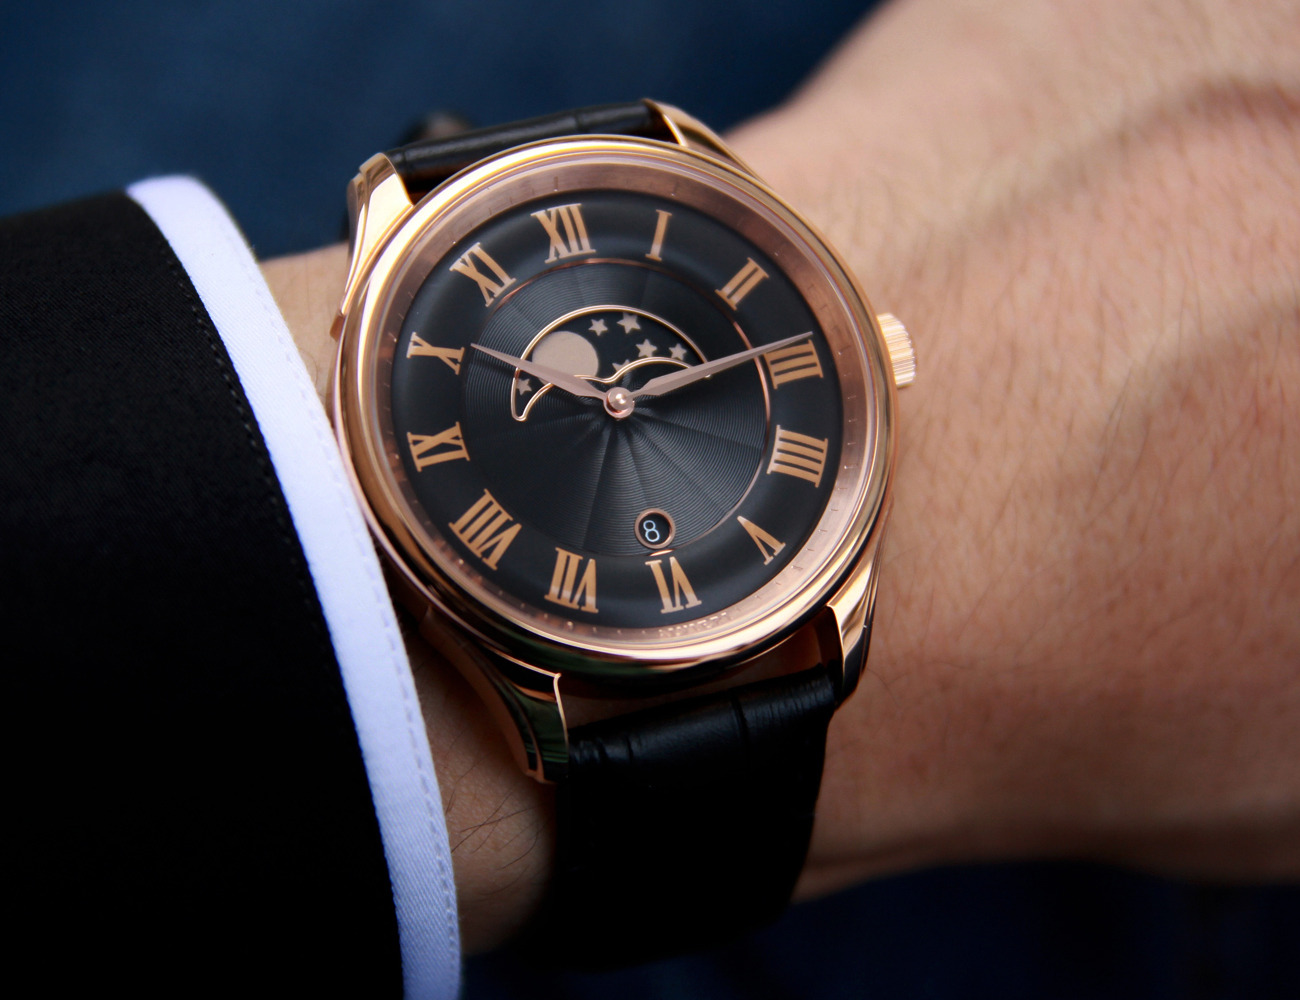 Alvieri – Elegant Watch with a Really Lively Dial